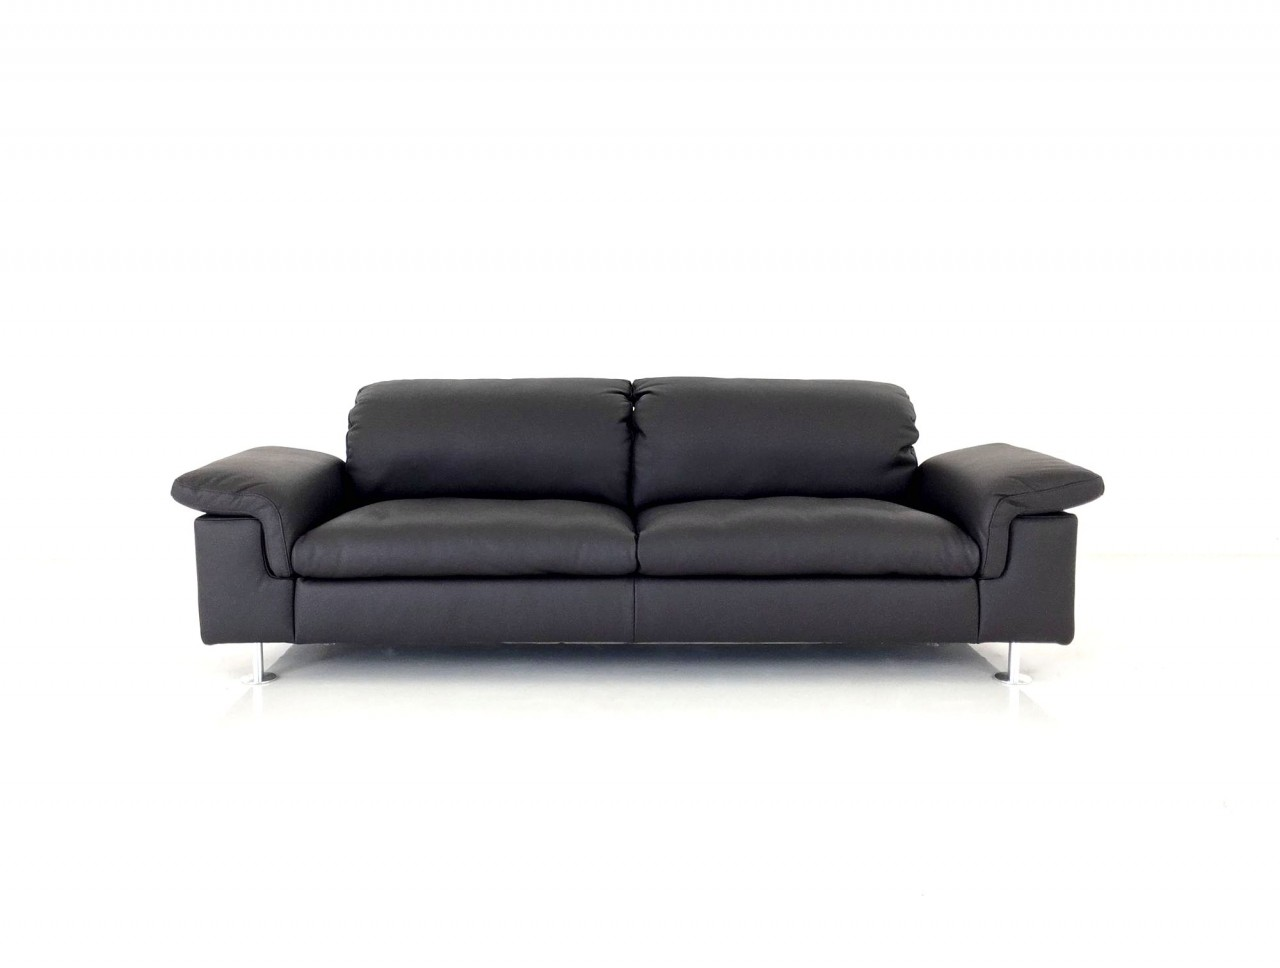 ewald schillig mondo verde sofa im dickleder espresso ewald schillig brand blues ewald. Black Bedroom Furniture Sets. Home Design Ideas